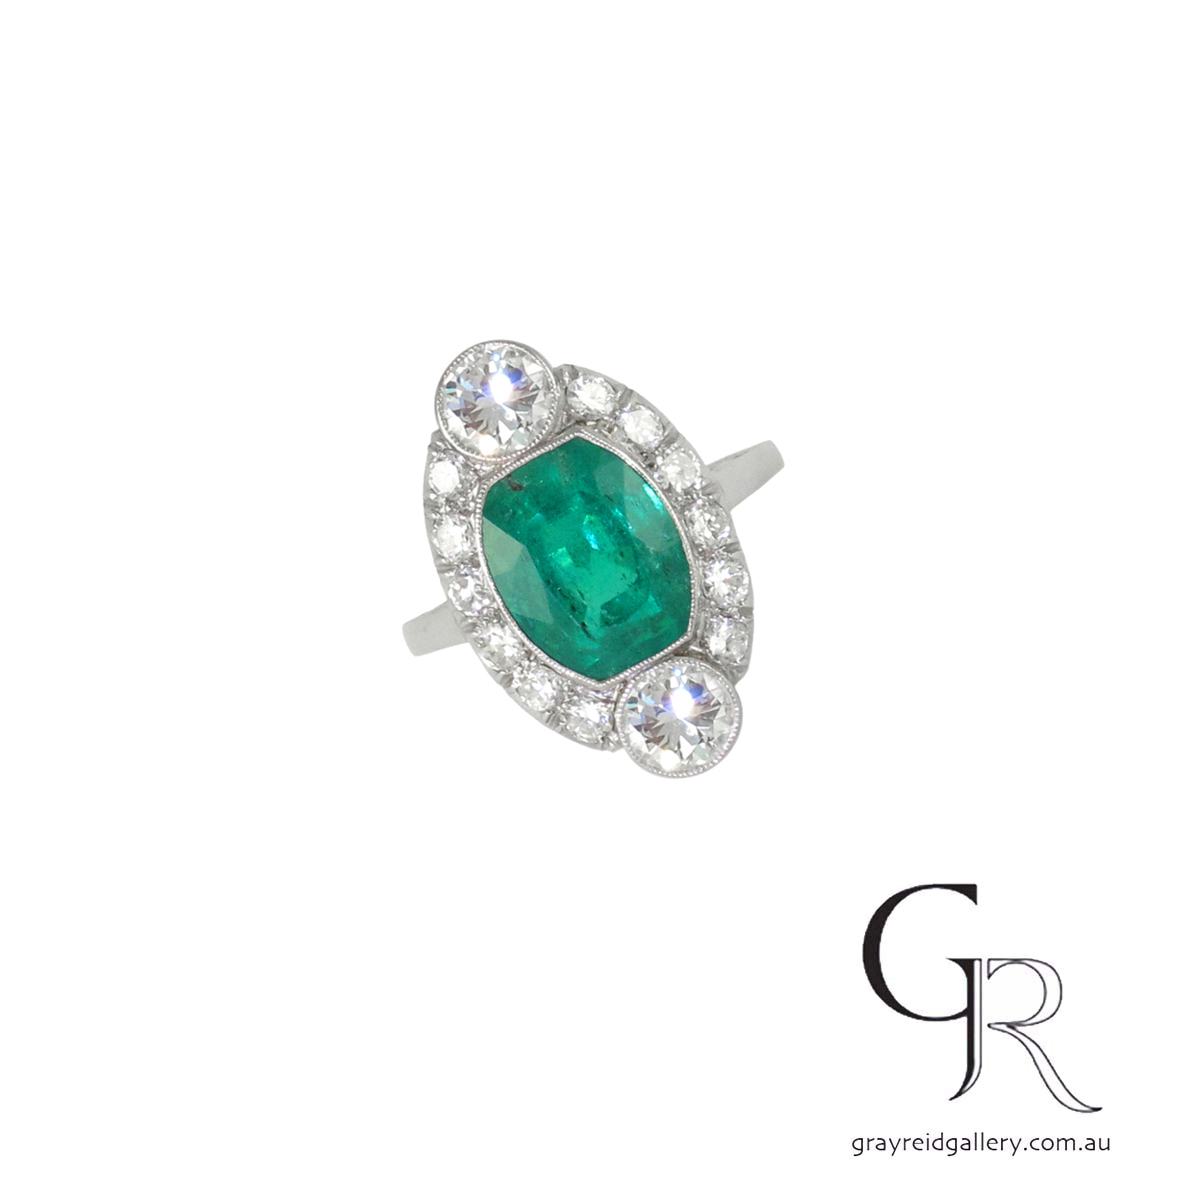 Antique Emerald _ Diamond Ring Melbourne Gray Reid Gallery.JPG